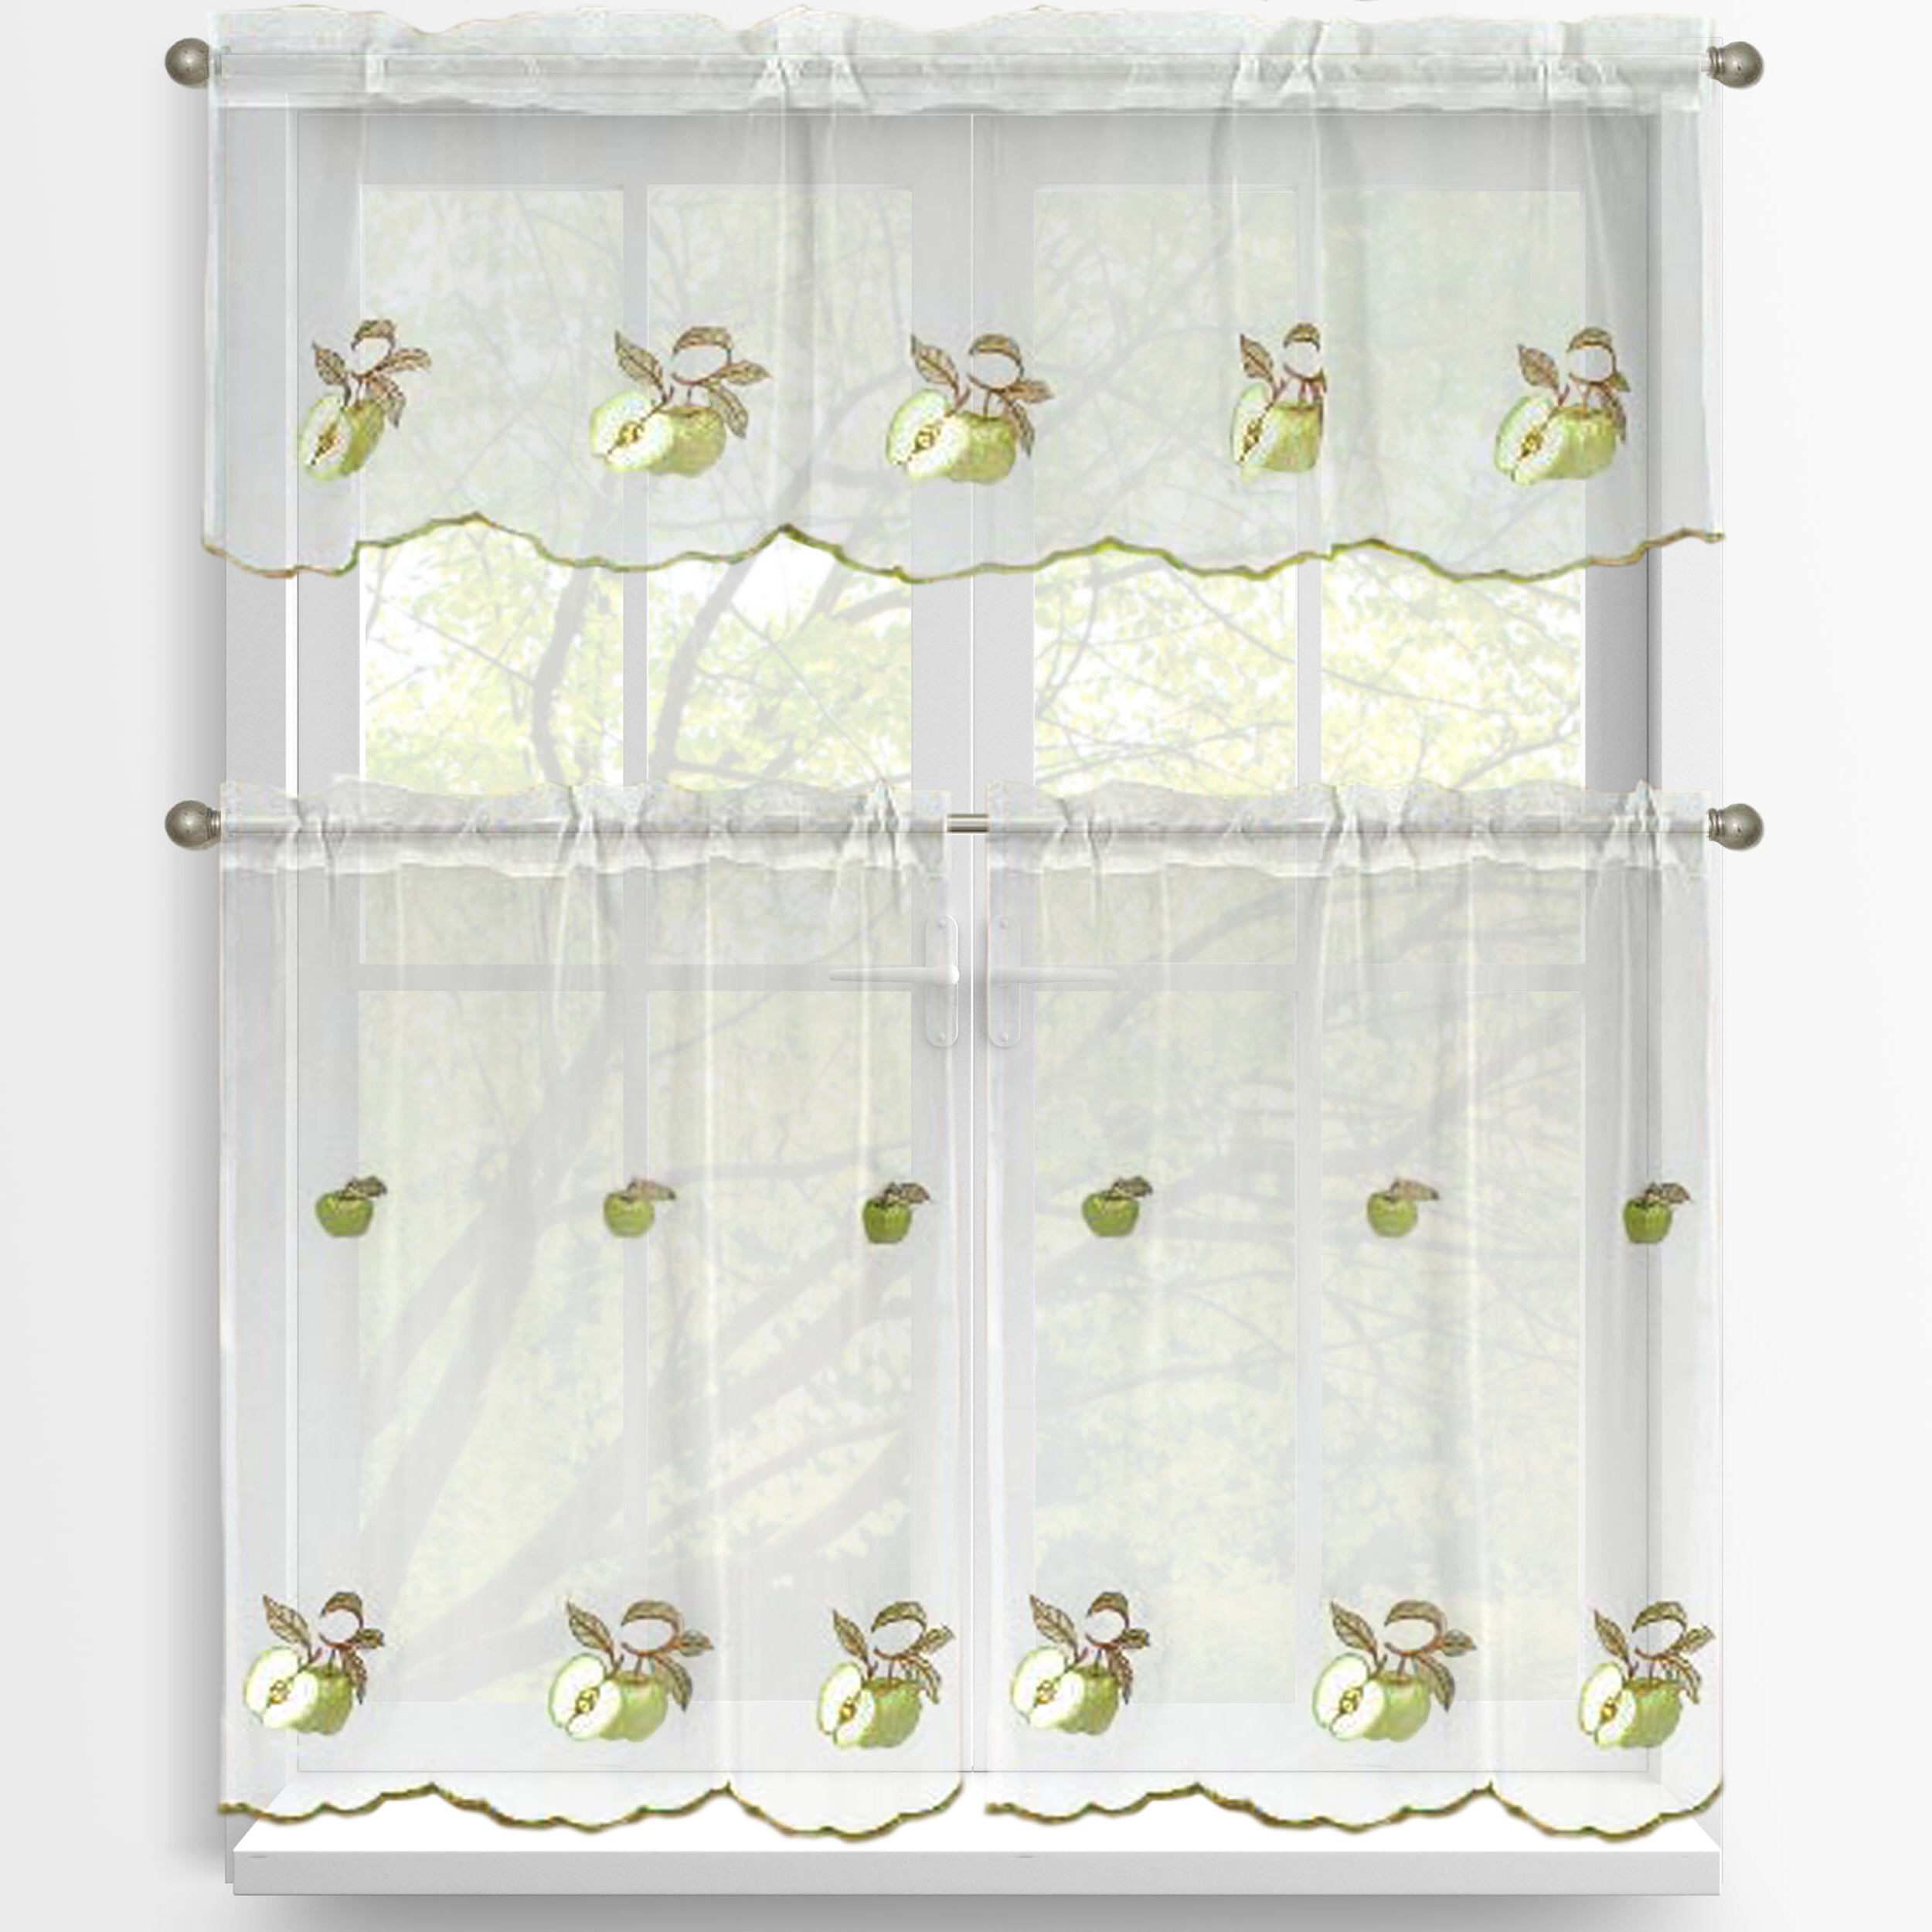 Favorite Kitchen Curtain Tiers For Green Apples 3 Piece Embroidered Kitchen Tier And Valance Set (View 3 of 20)